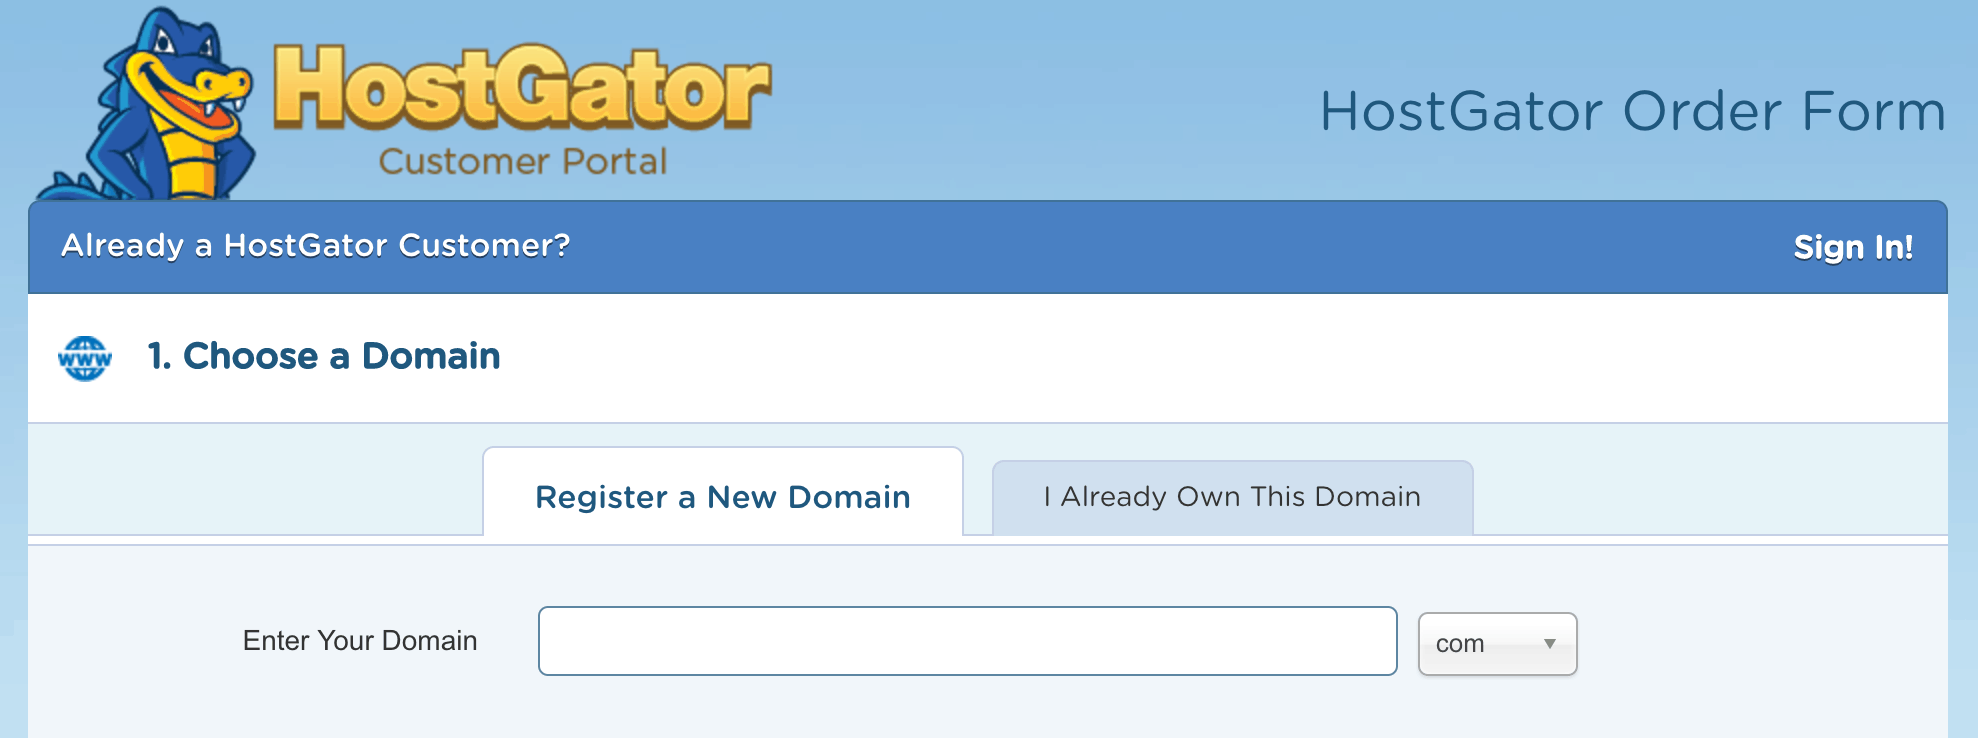 HostGator Step 1